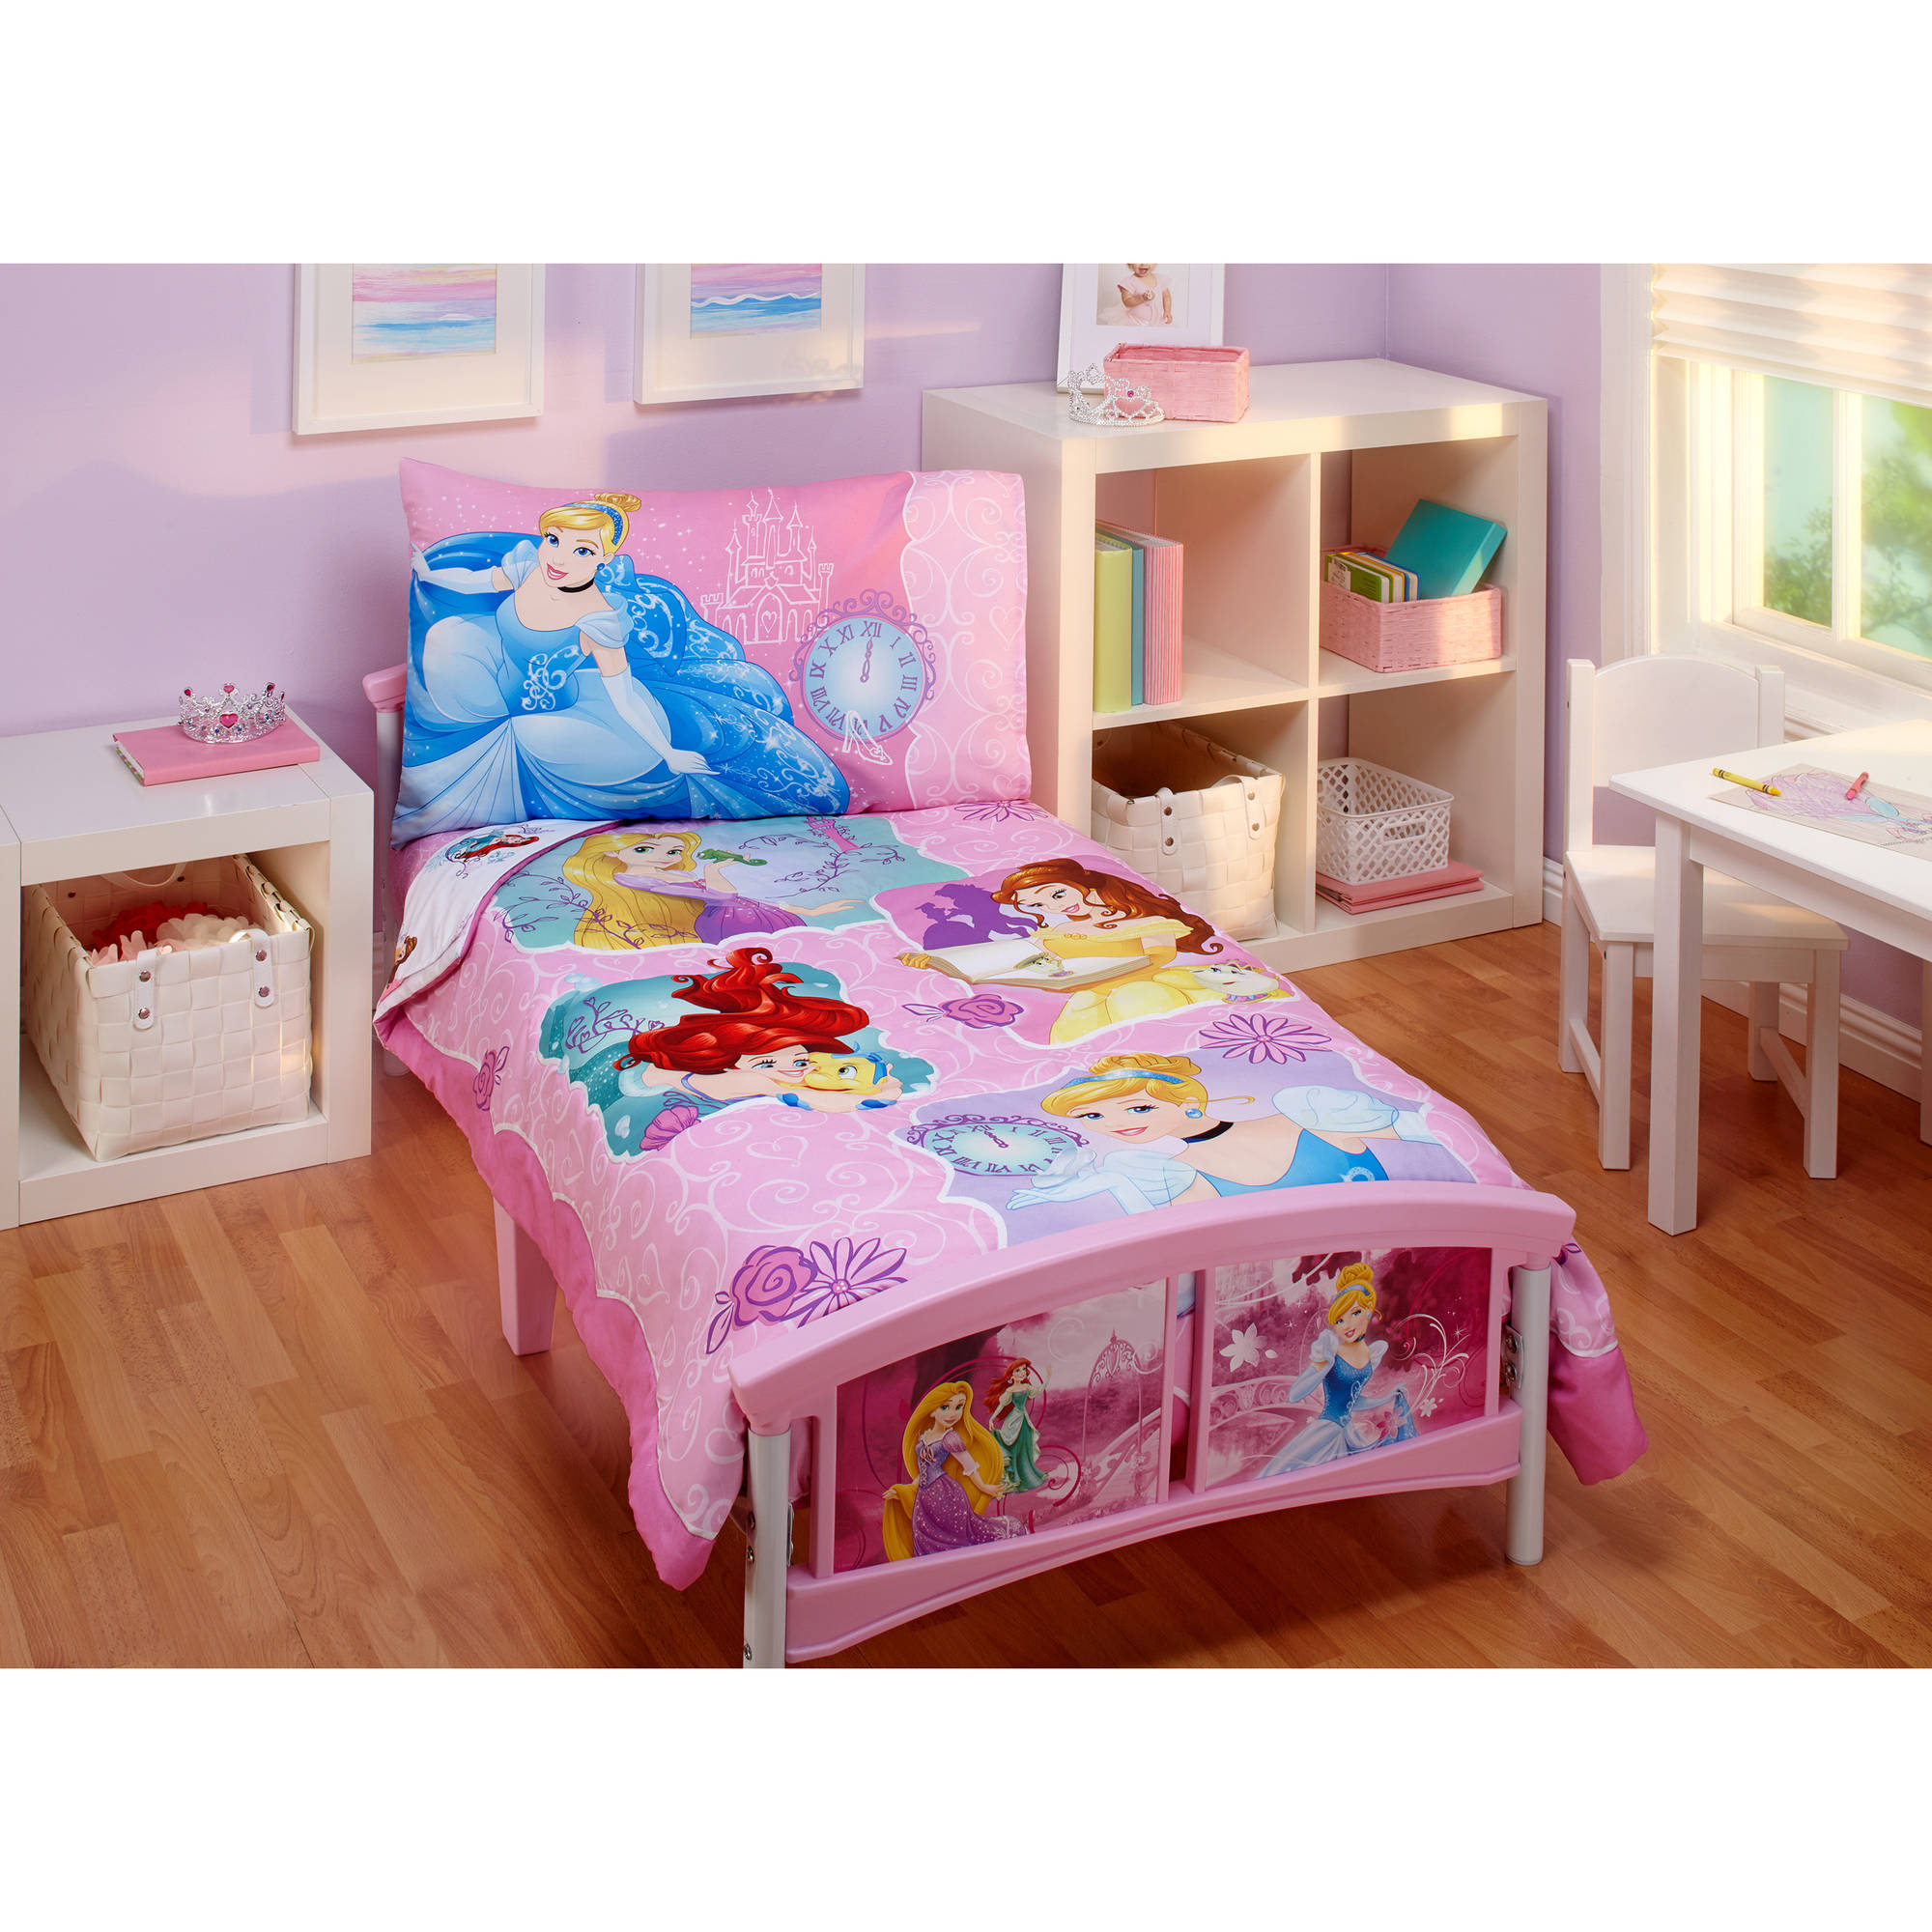 Princess Dream Big 4-Piece Toddler Bedding Set